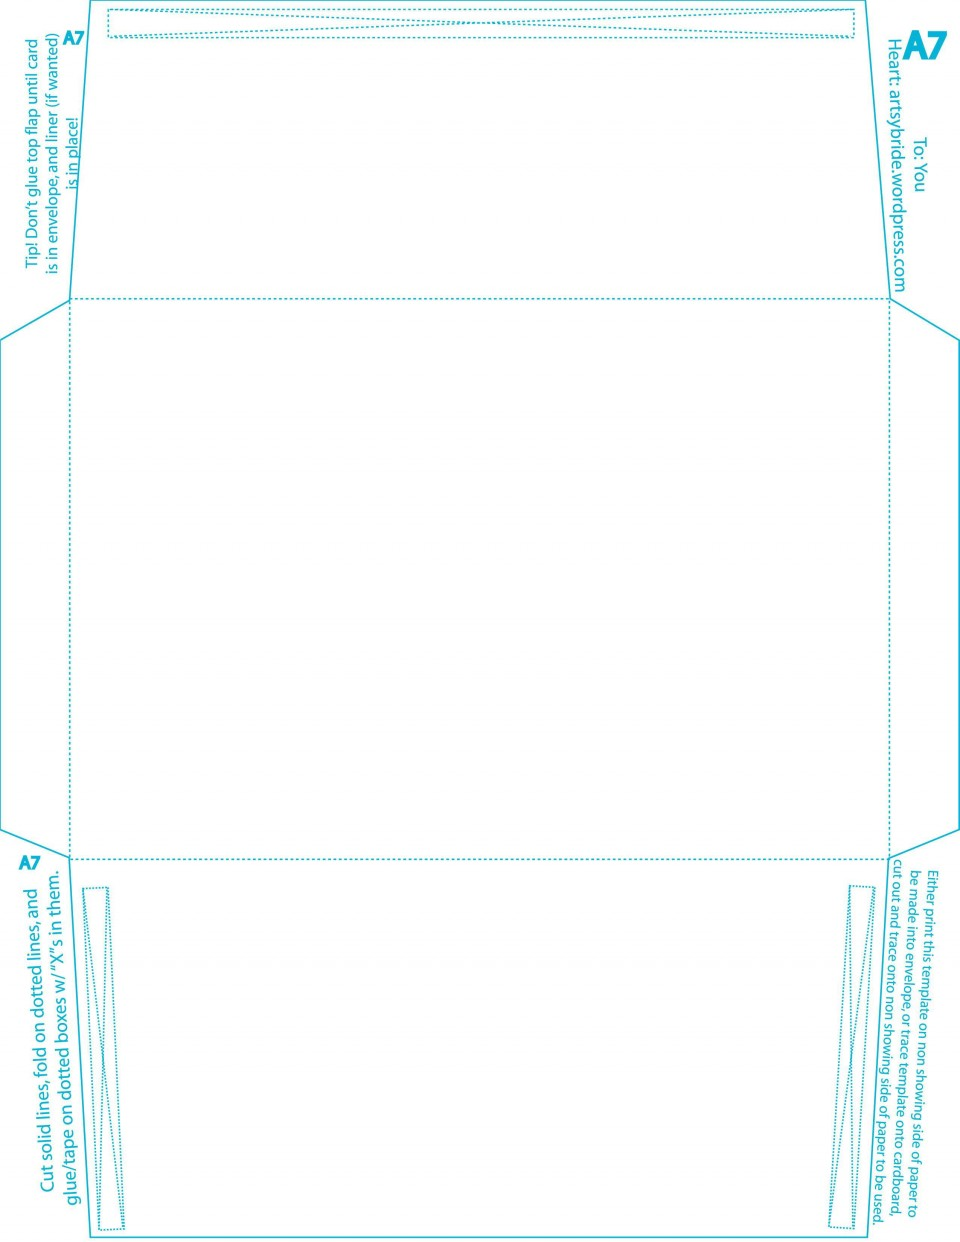 005 Formidable A7 Envelope Liner Template Square Flap Picture 960